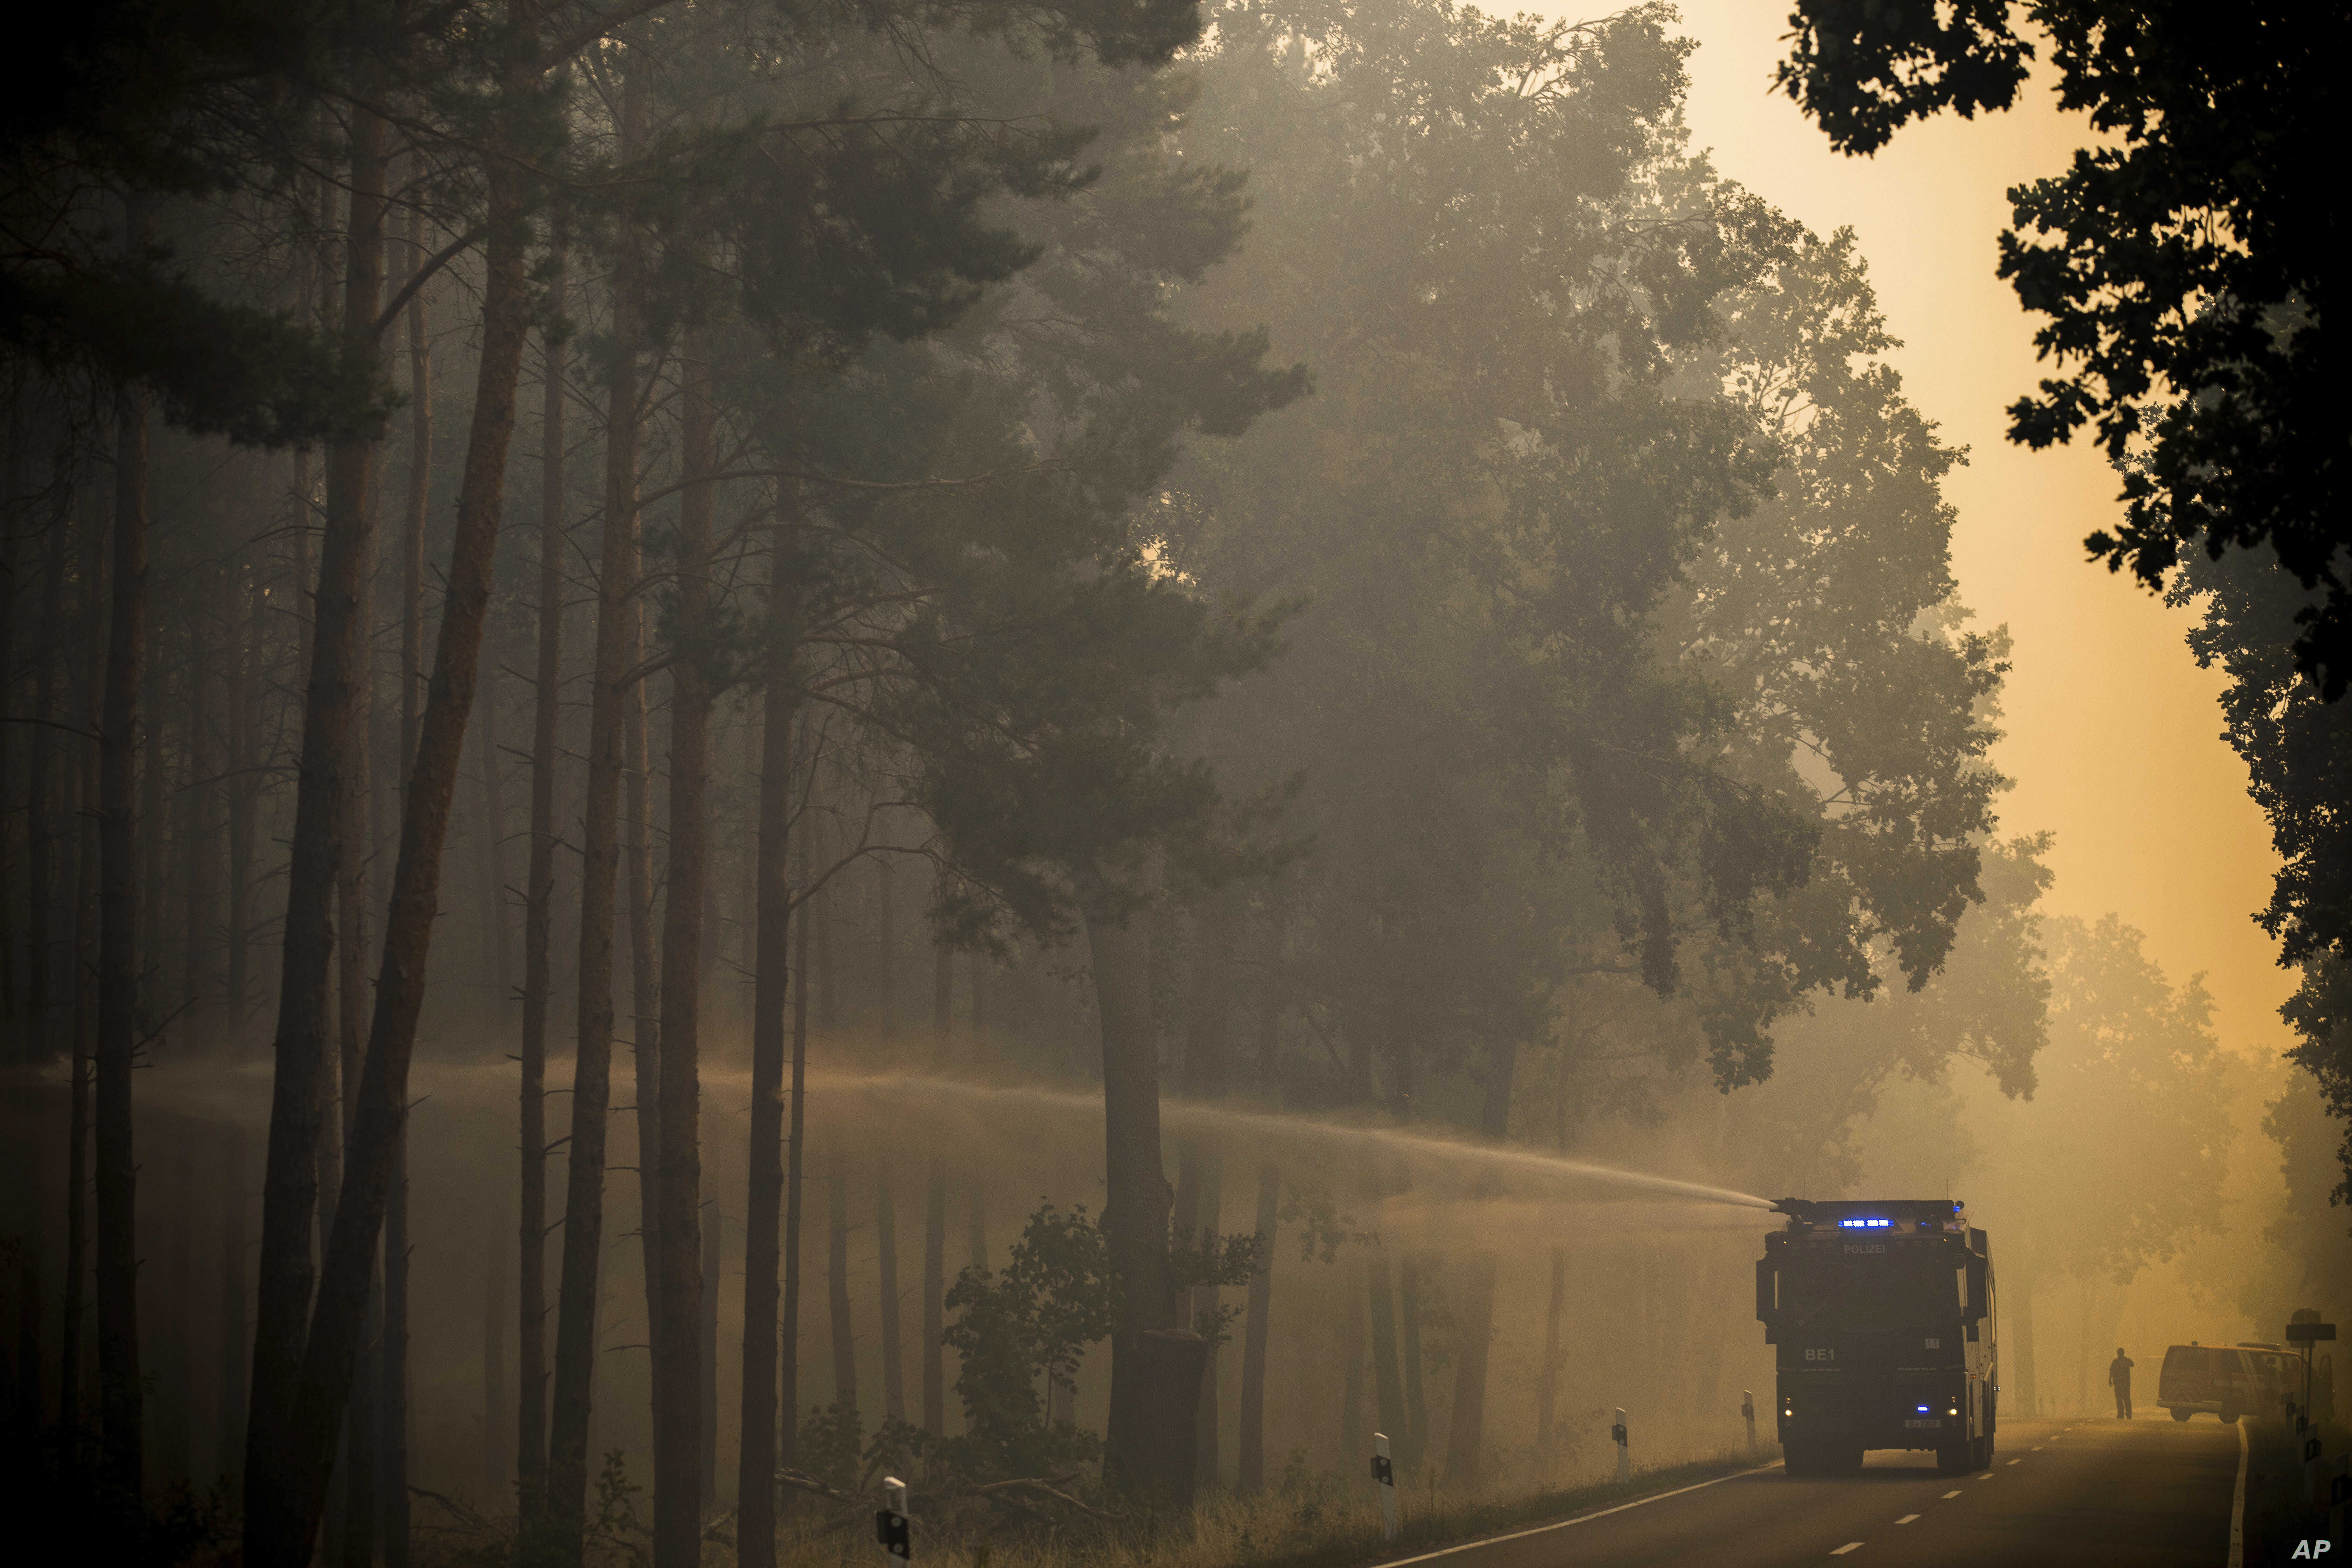 A police water cannon sprays water into a forest near Treuenbrietzen, south of Berlin,  Aug. 24, 2018 after a trees on an area of several hundred soccer fields caught fire.